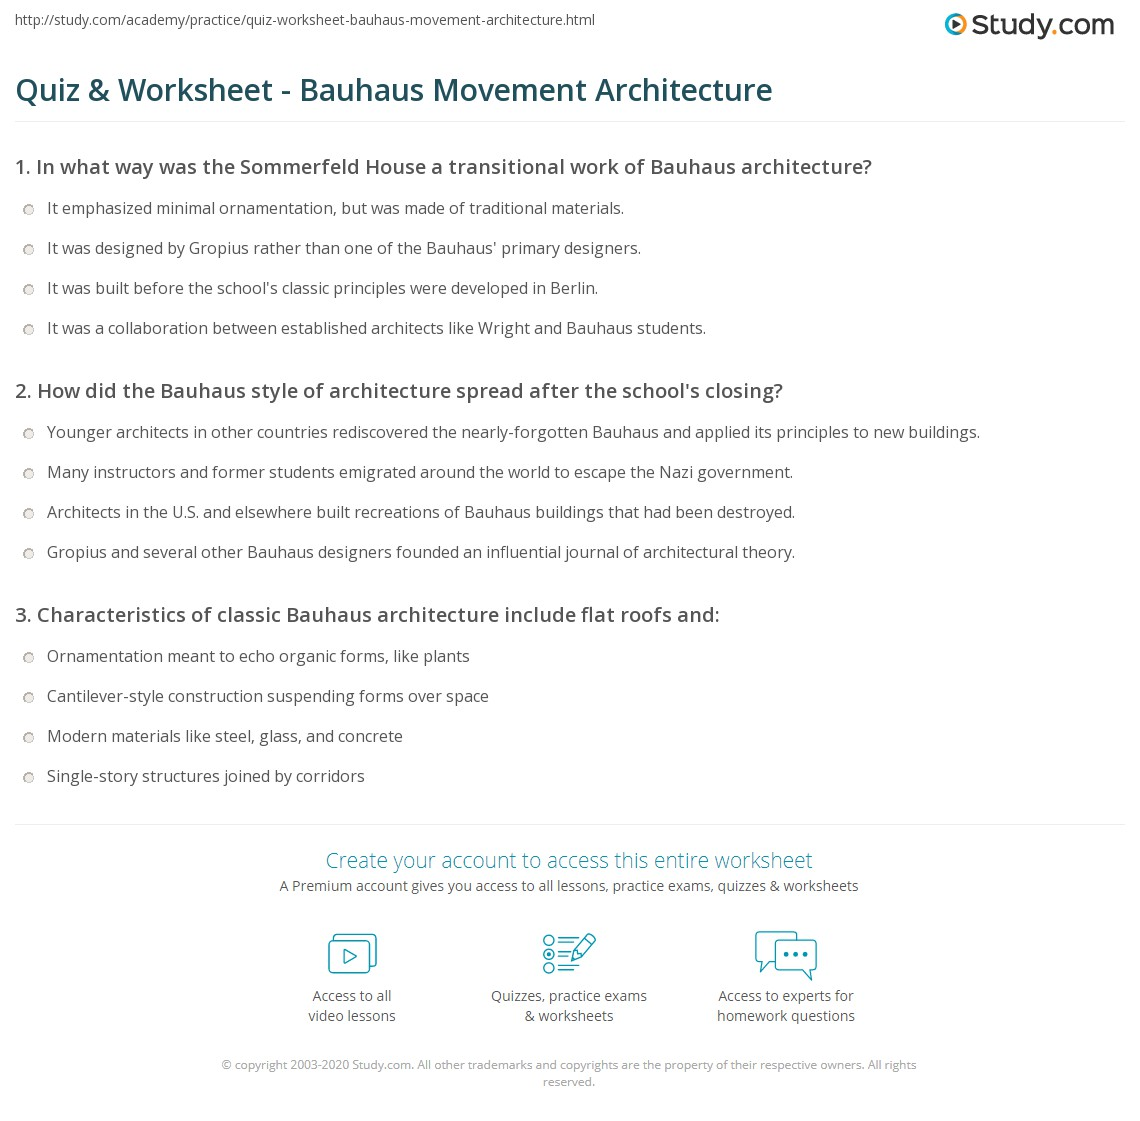 quiz worksheet bauhaus movement architecture study com